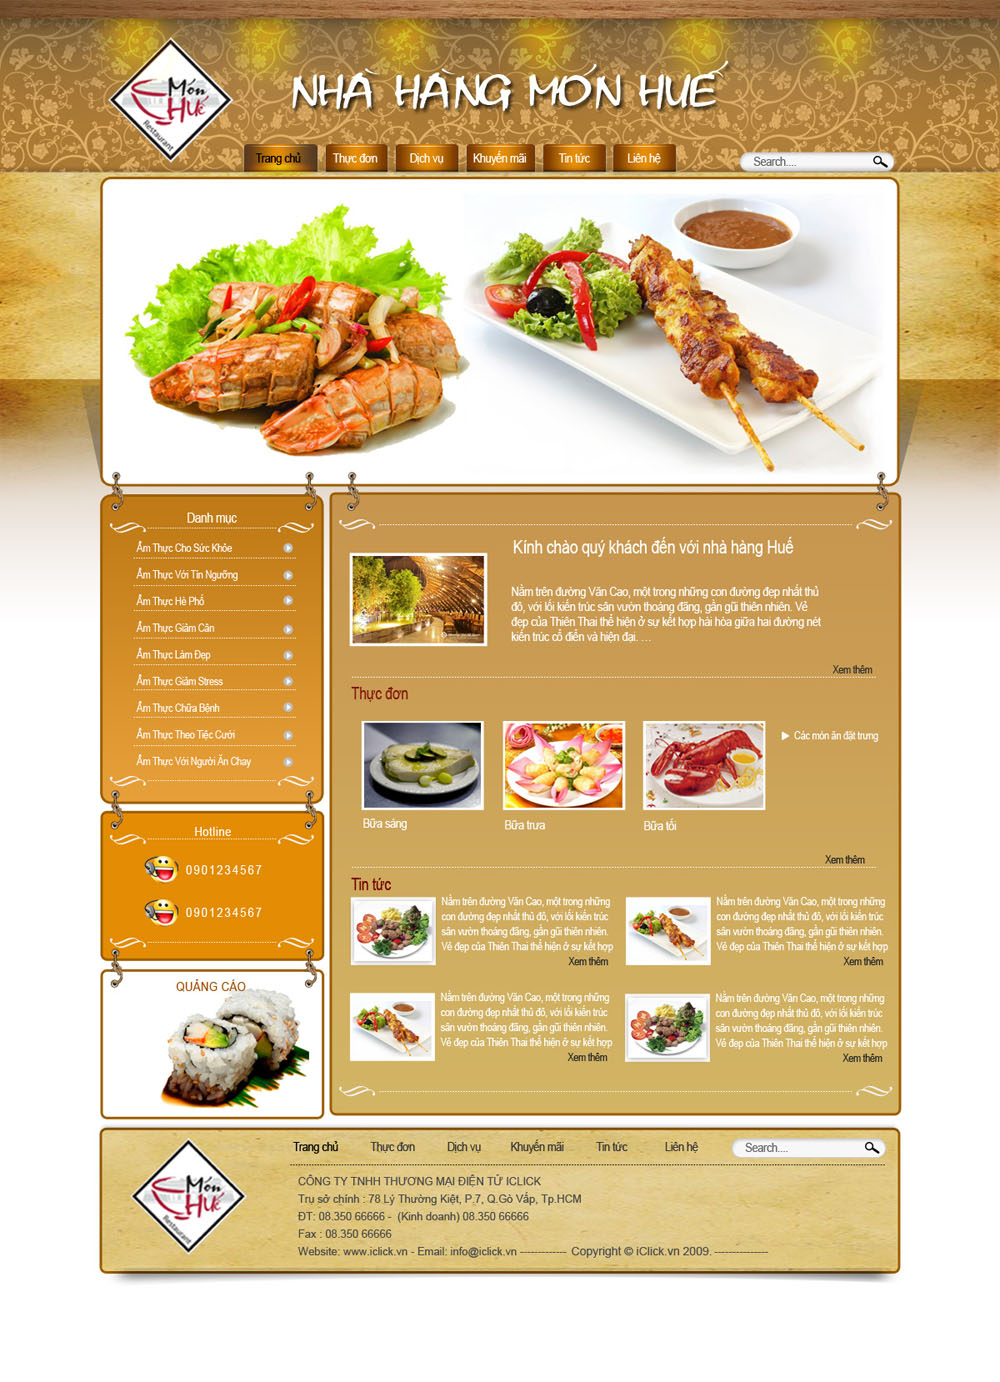 I will give you reall web design html and css combitional only